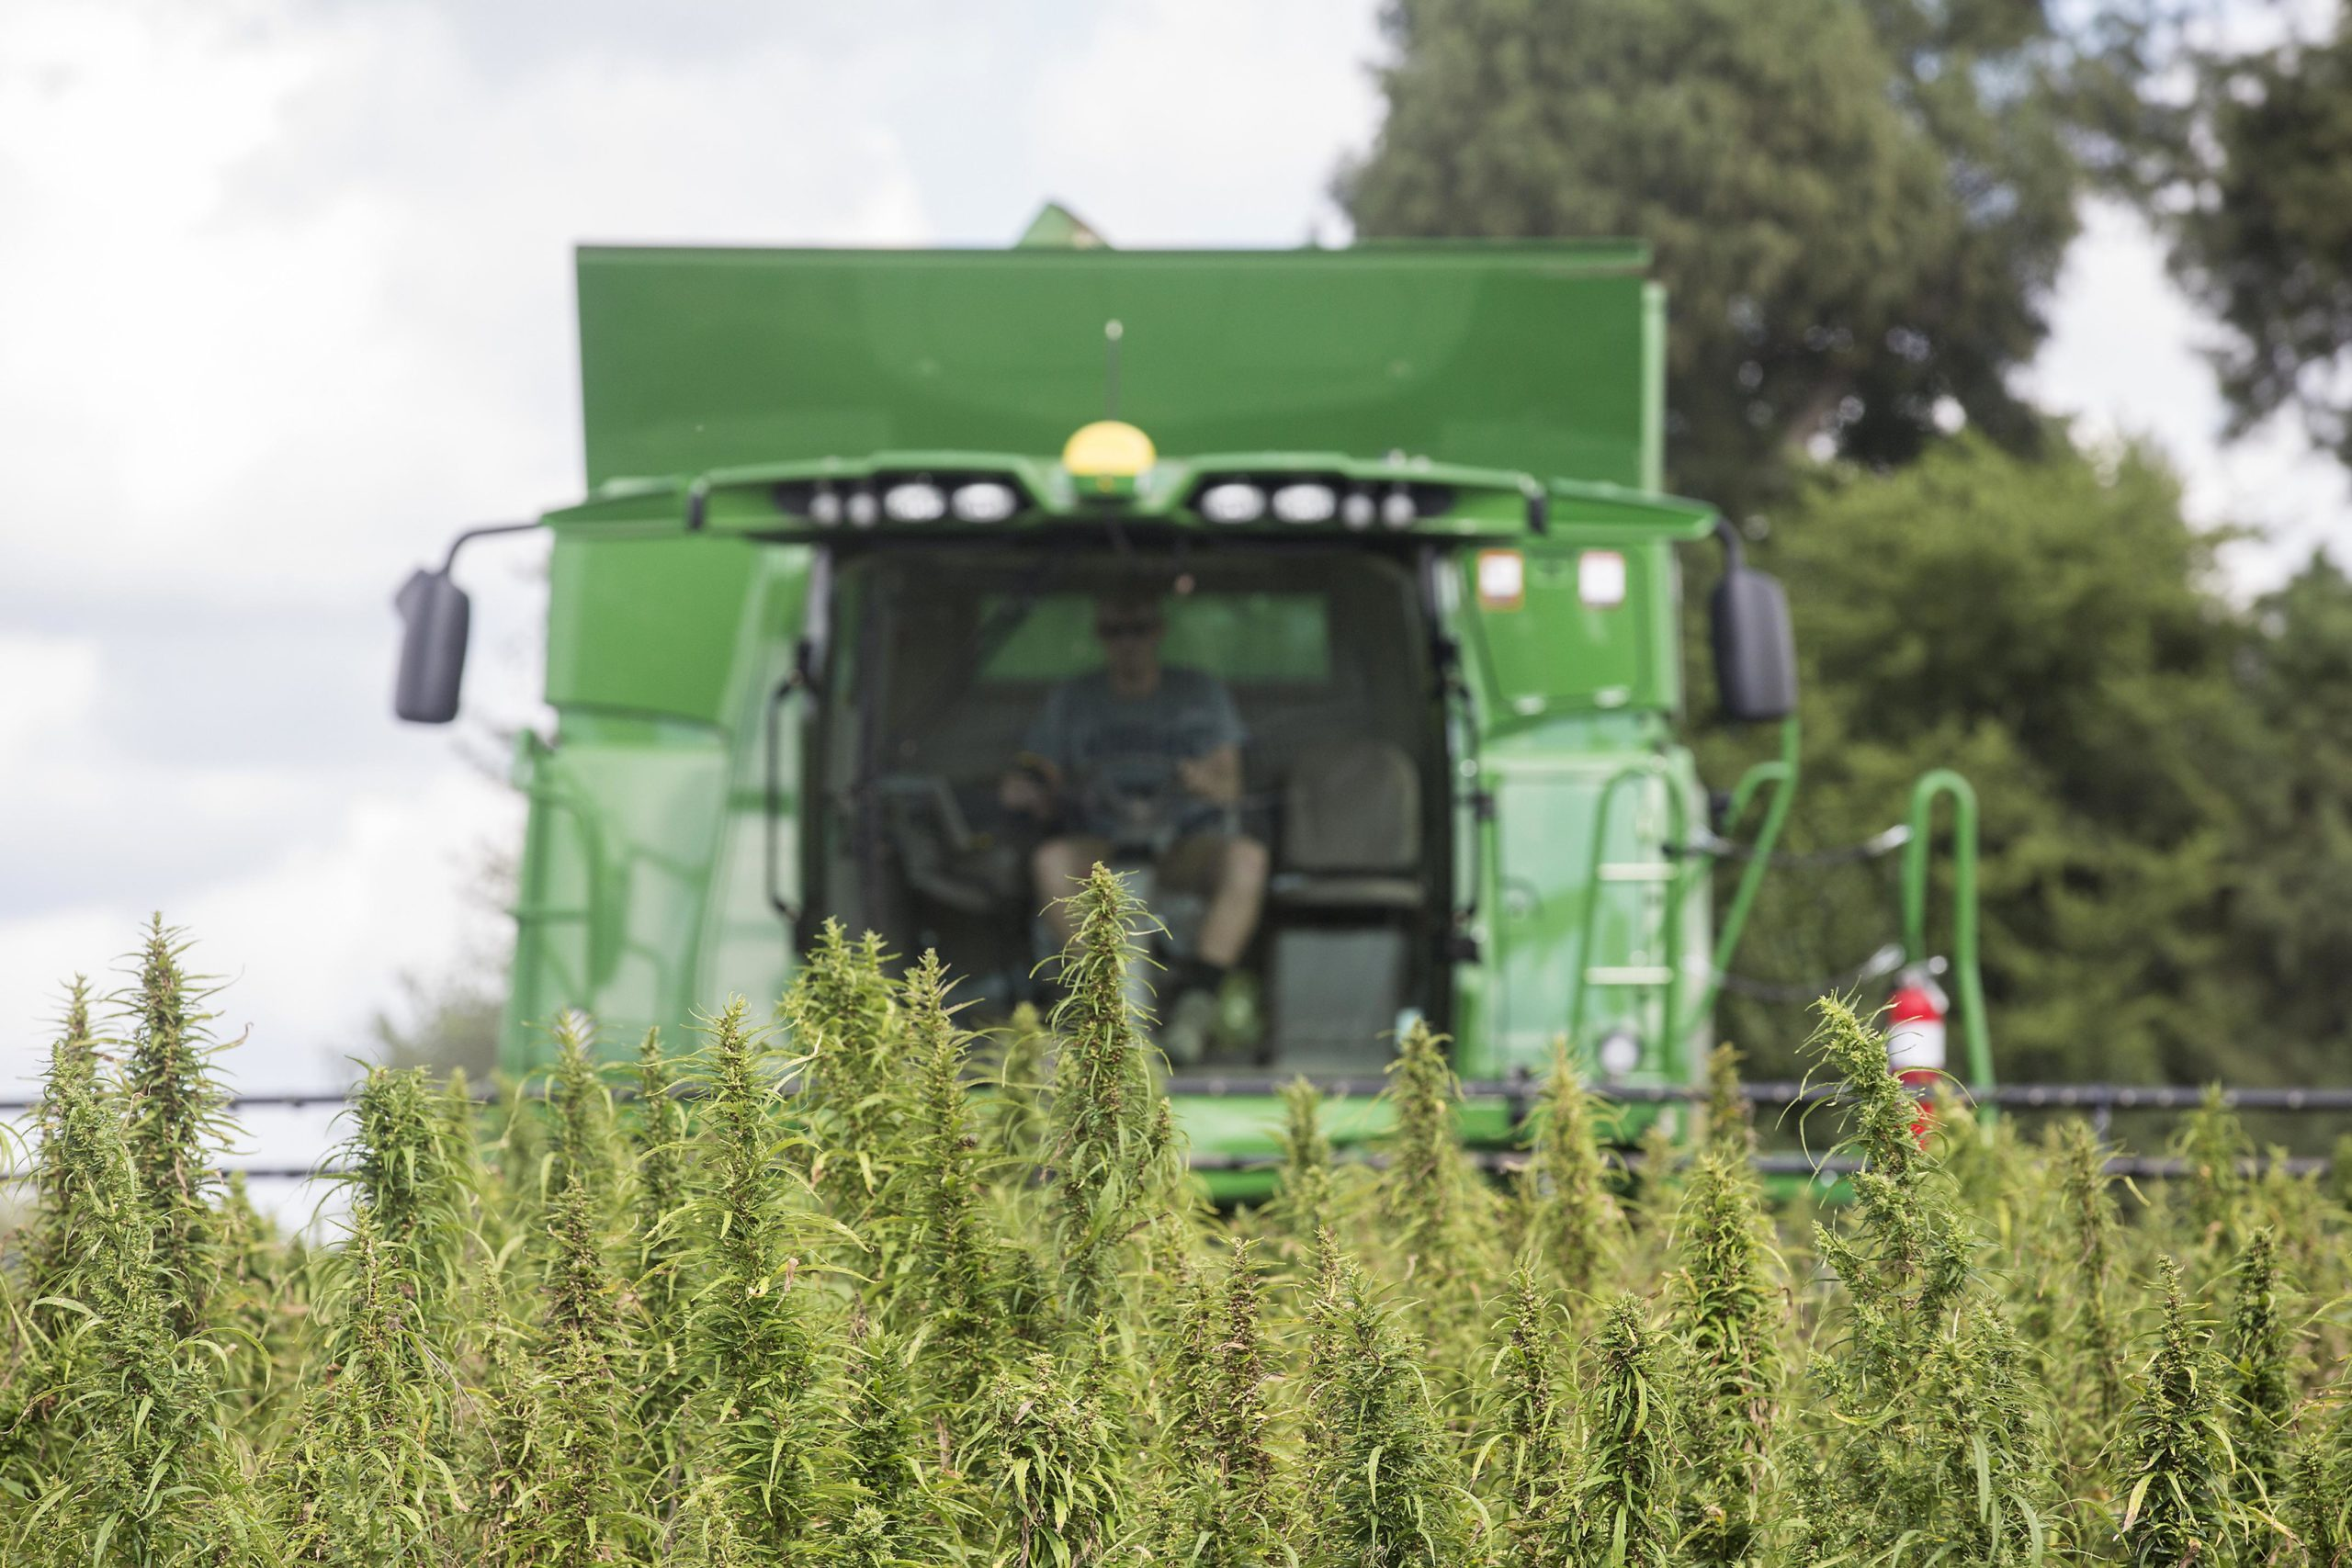 Hemp production in Georgia on hold until funding secured - The Augusta Chronicle